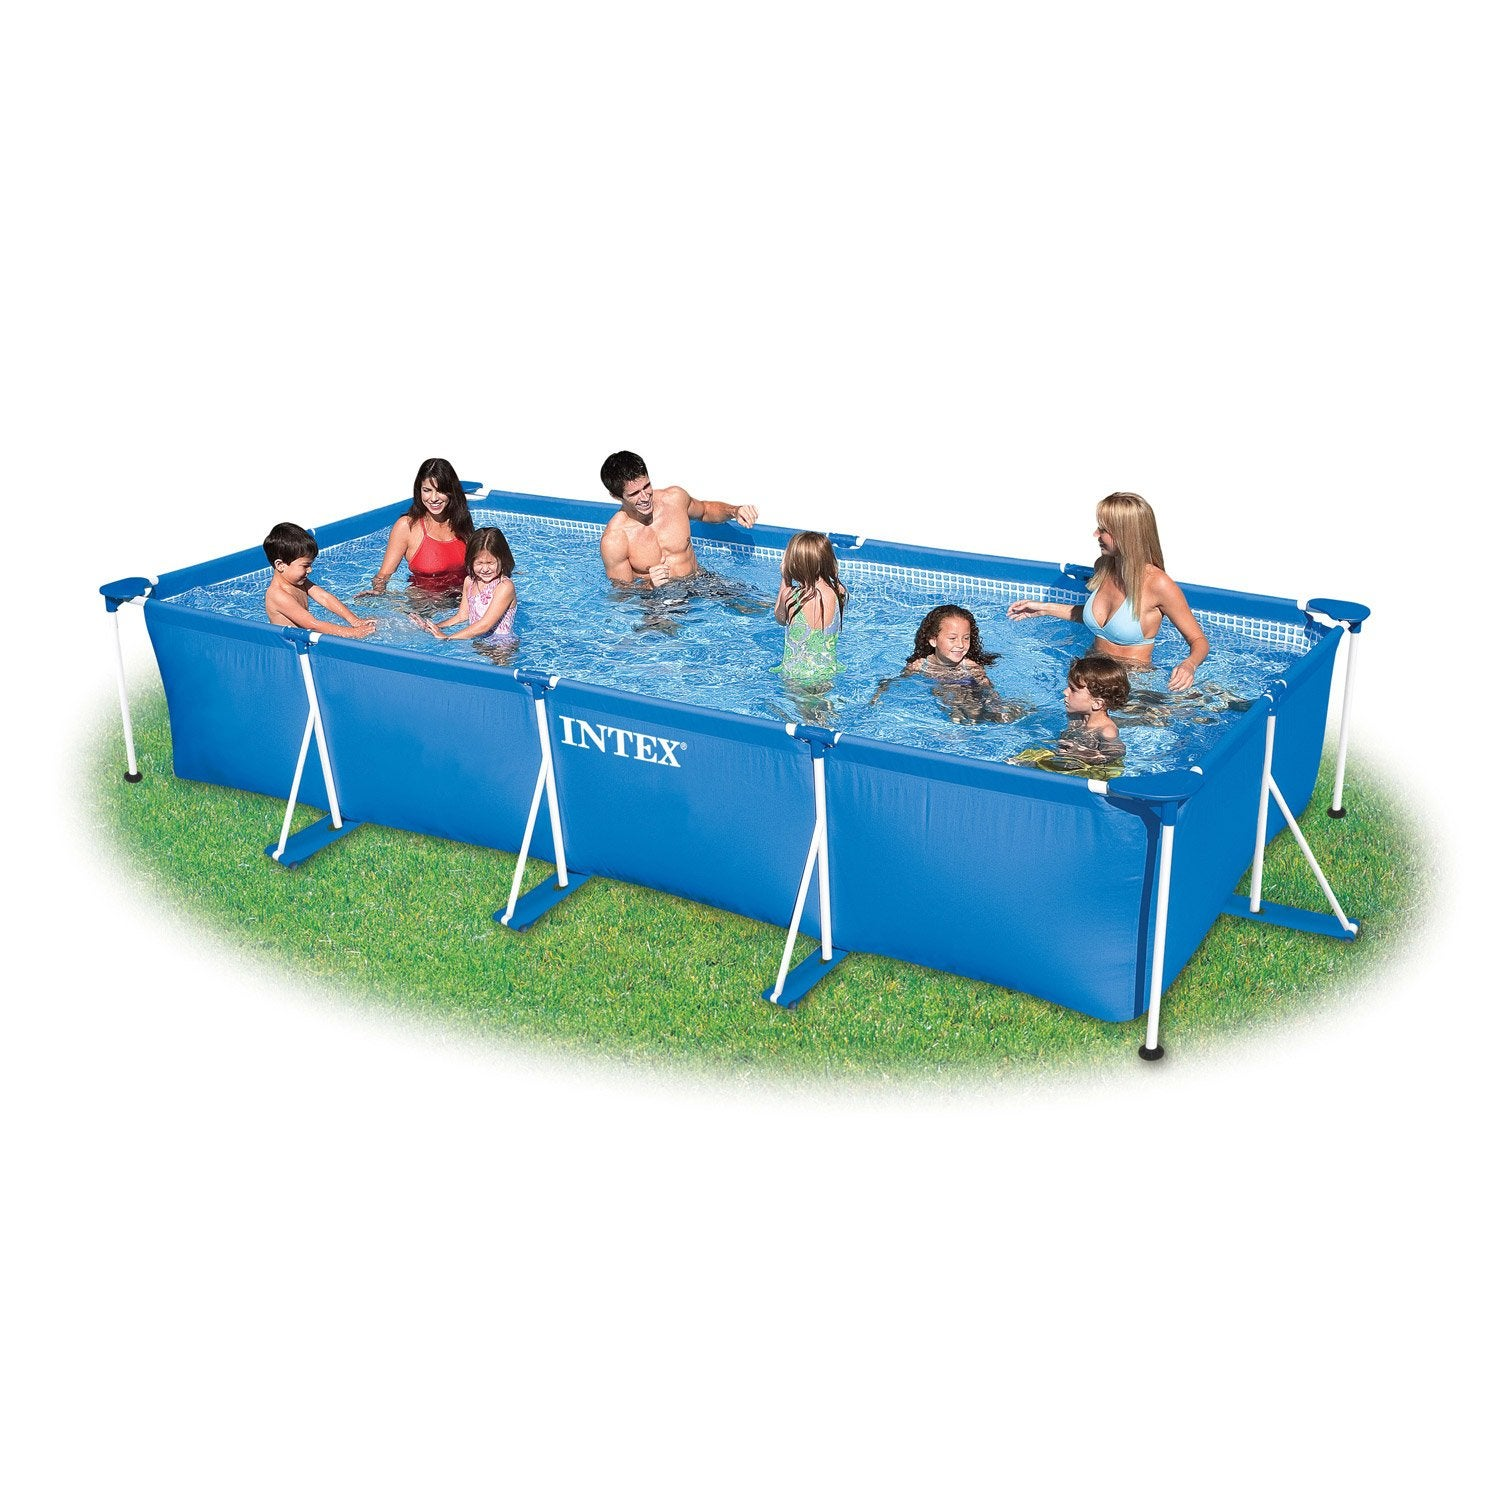 Piscine hors sol autoportante tubulaire intex l x l for Piscine hors sol 1m60